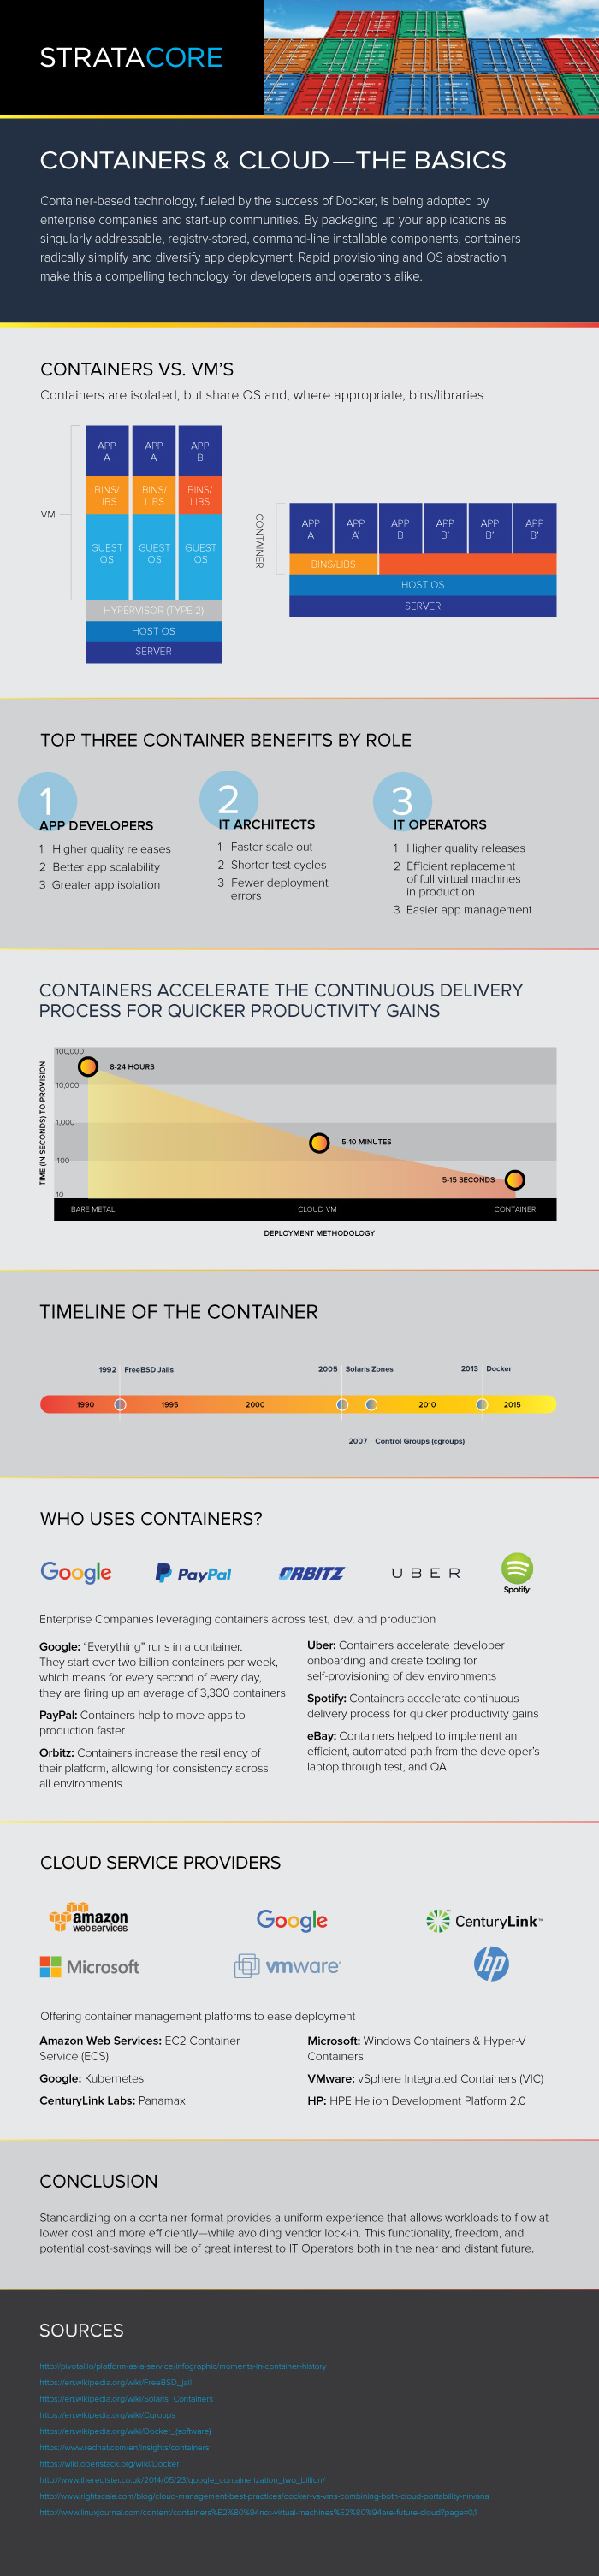 Container-Infographic-final.jpg